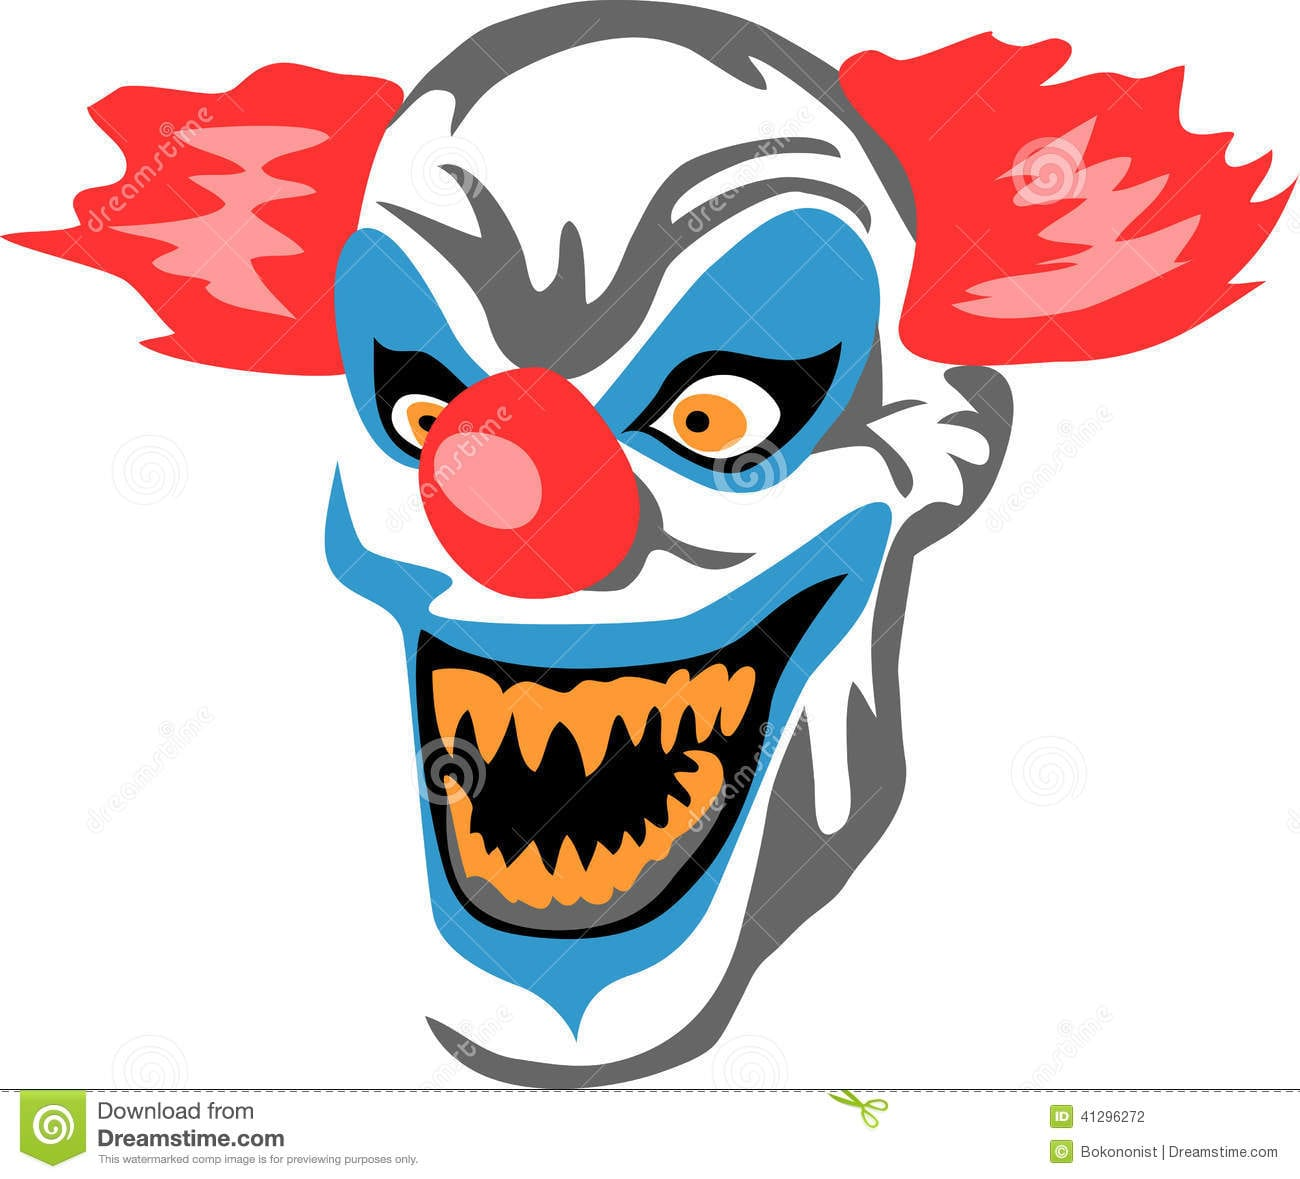 Scary Clown Stock Vector  Illustration Of Crazy, Horror